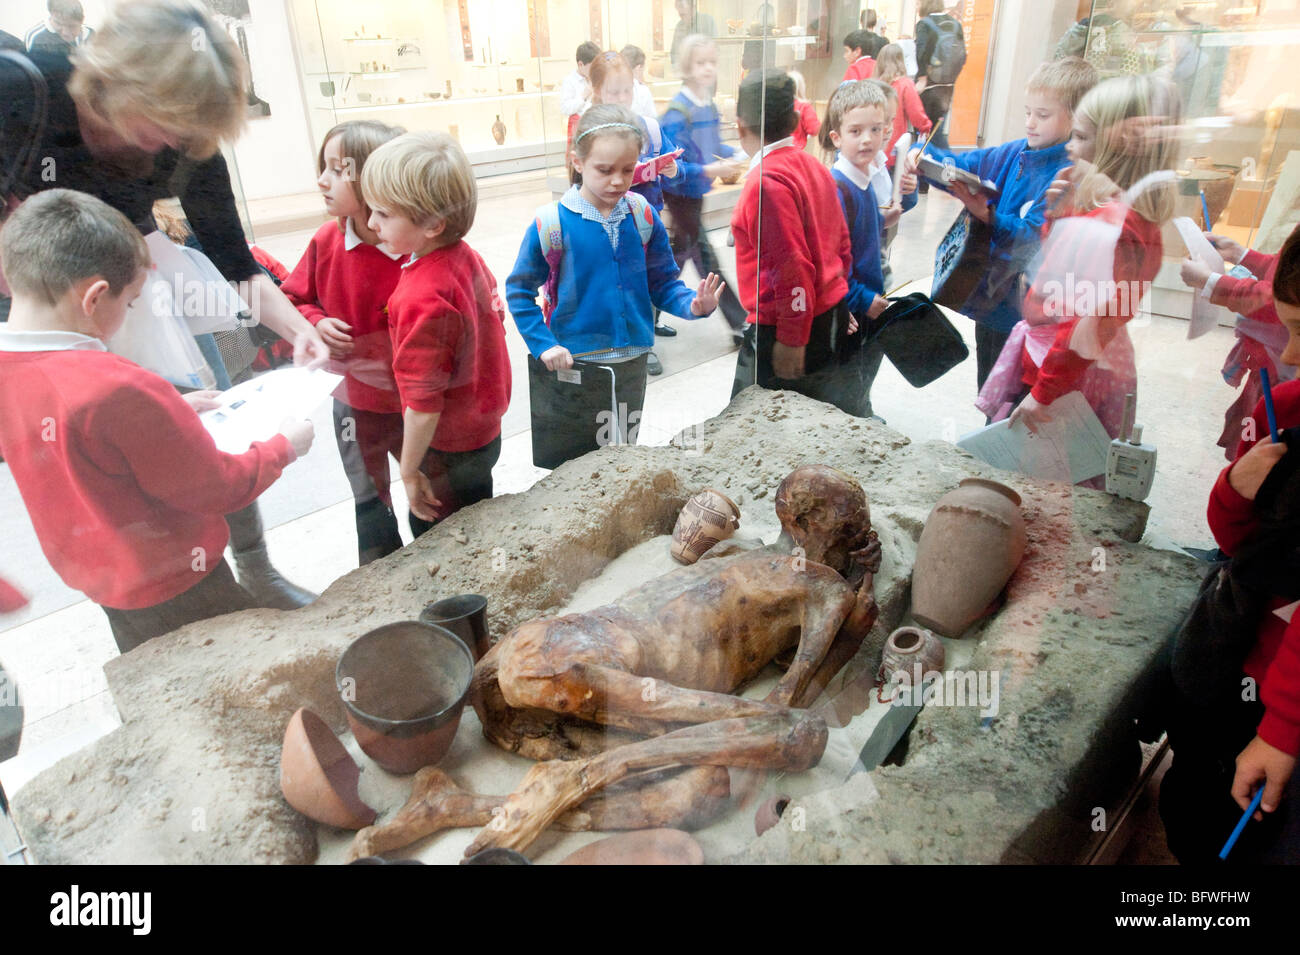 Children on educational school trip to the Egyptian rooms of the British Museum, London, UK - Stock Image